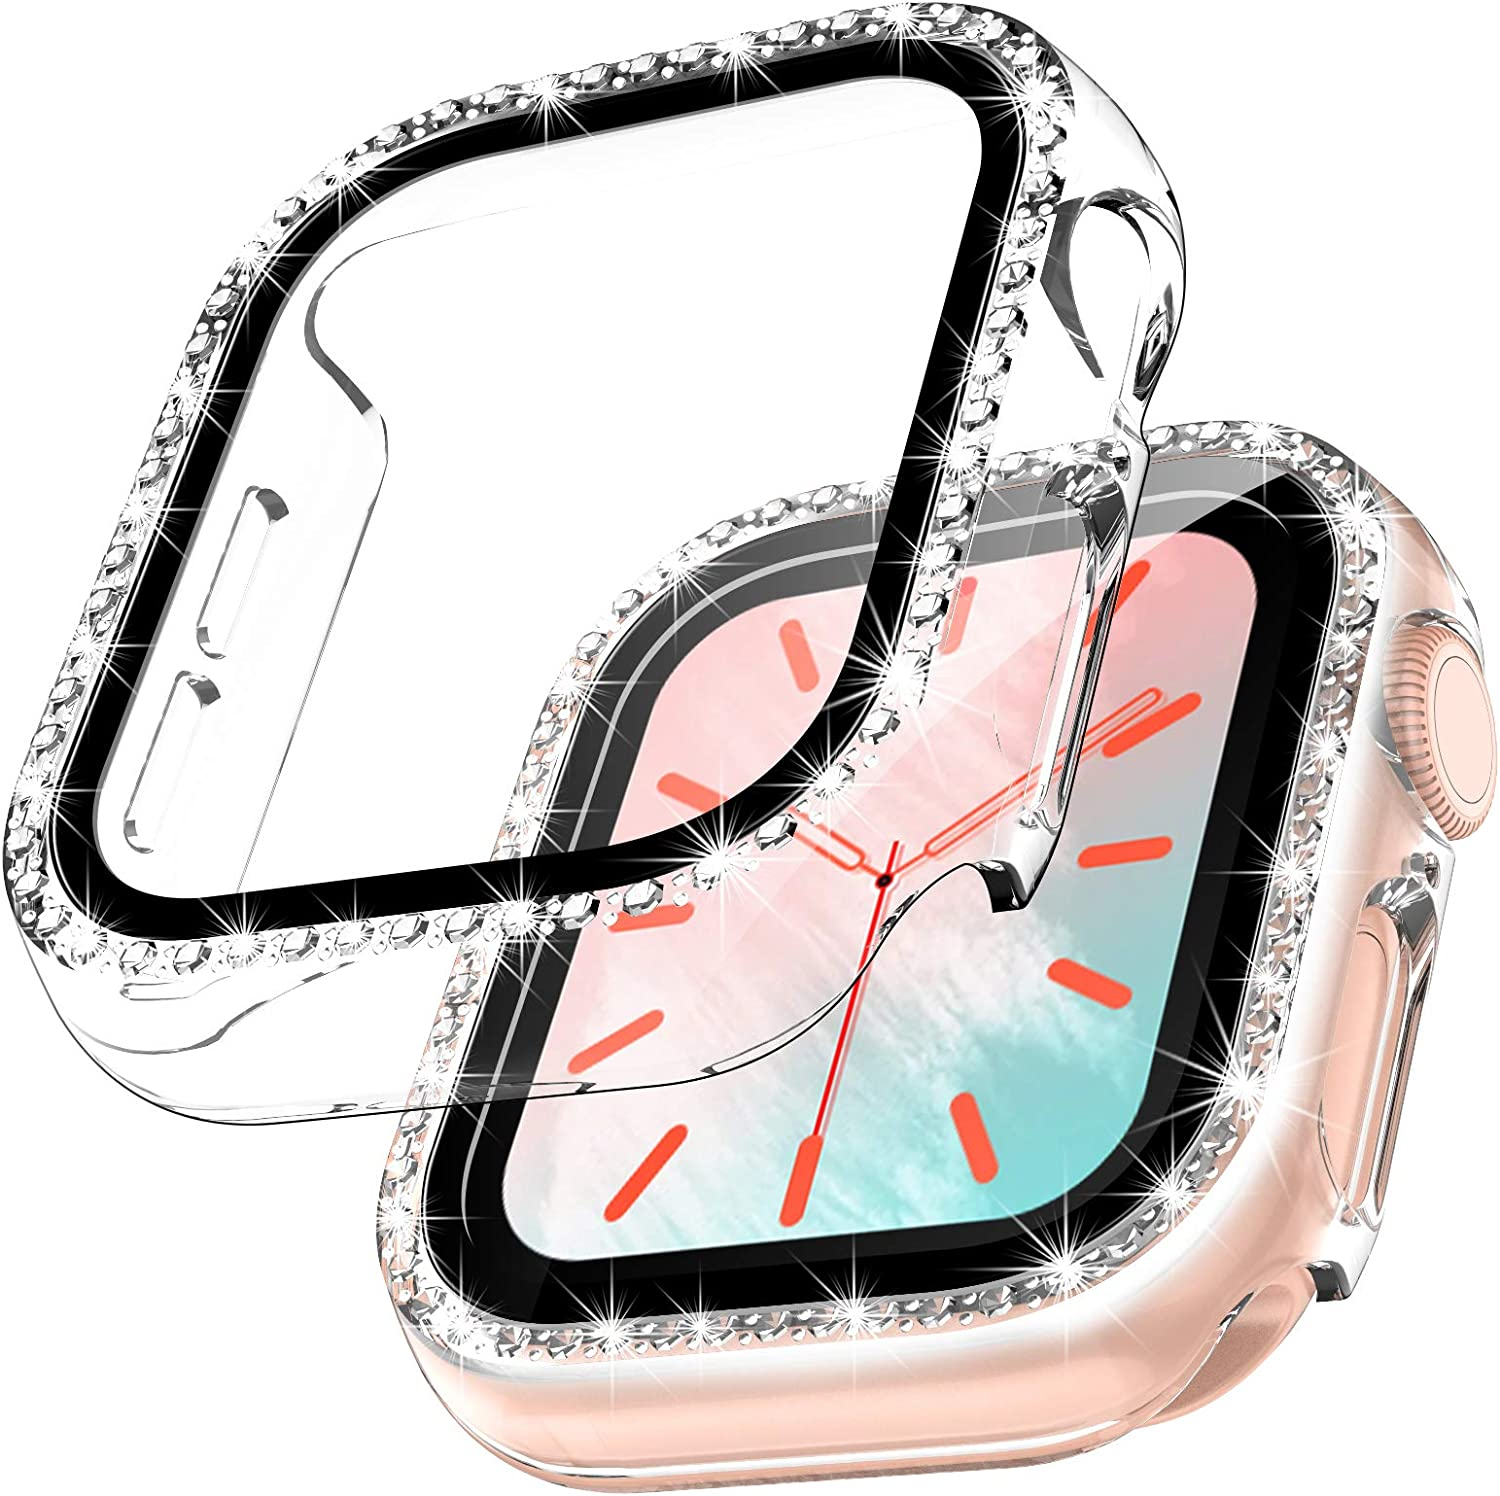 TOCOL [2 Packs] Case Compatible with Apple Watch Series 3/2/1 42mm with Built-in Tempered Glass Screen Protector, Bling Crystal Diamond Face Cover for Women iWatch 42mm - Clear